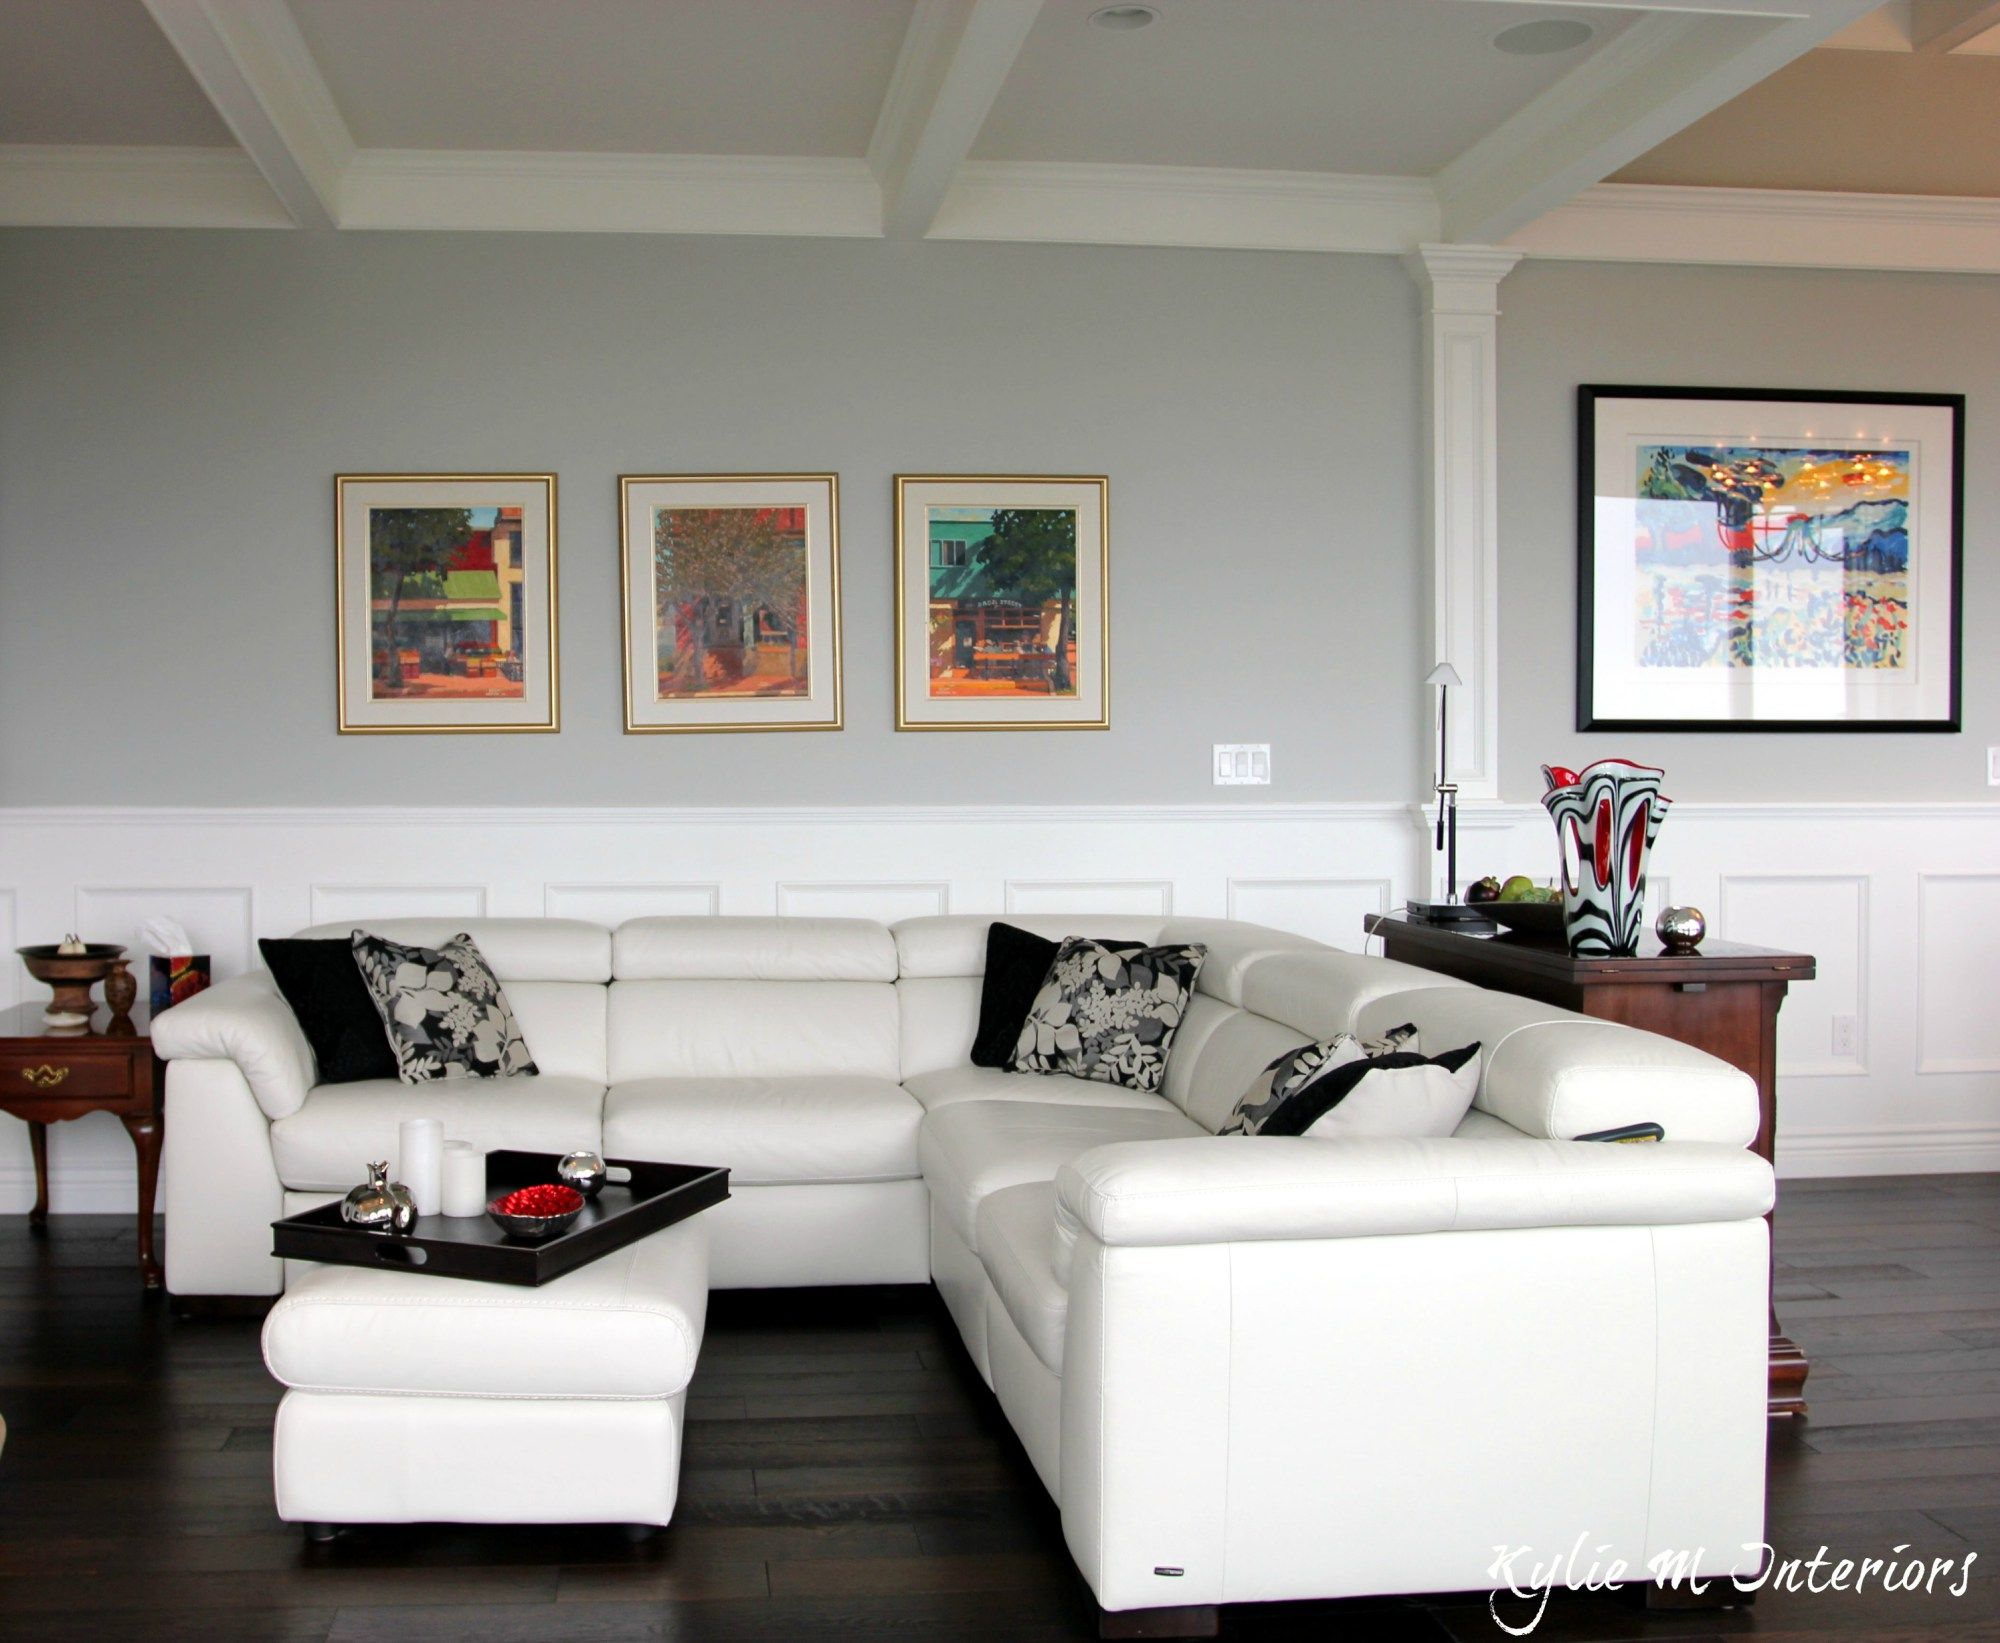 The 9 Best Benjamin Moore Paint Colors Grays Including Undertones Paint Colors For Living Room Living Room Paint Living Room Colors,Color Personality Test Printable